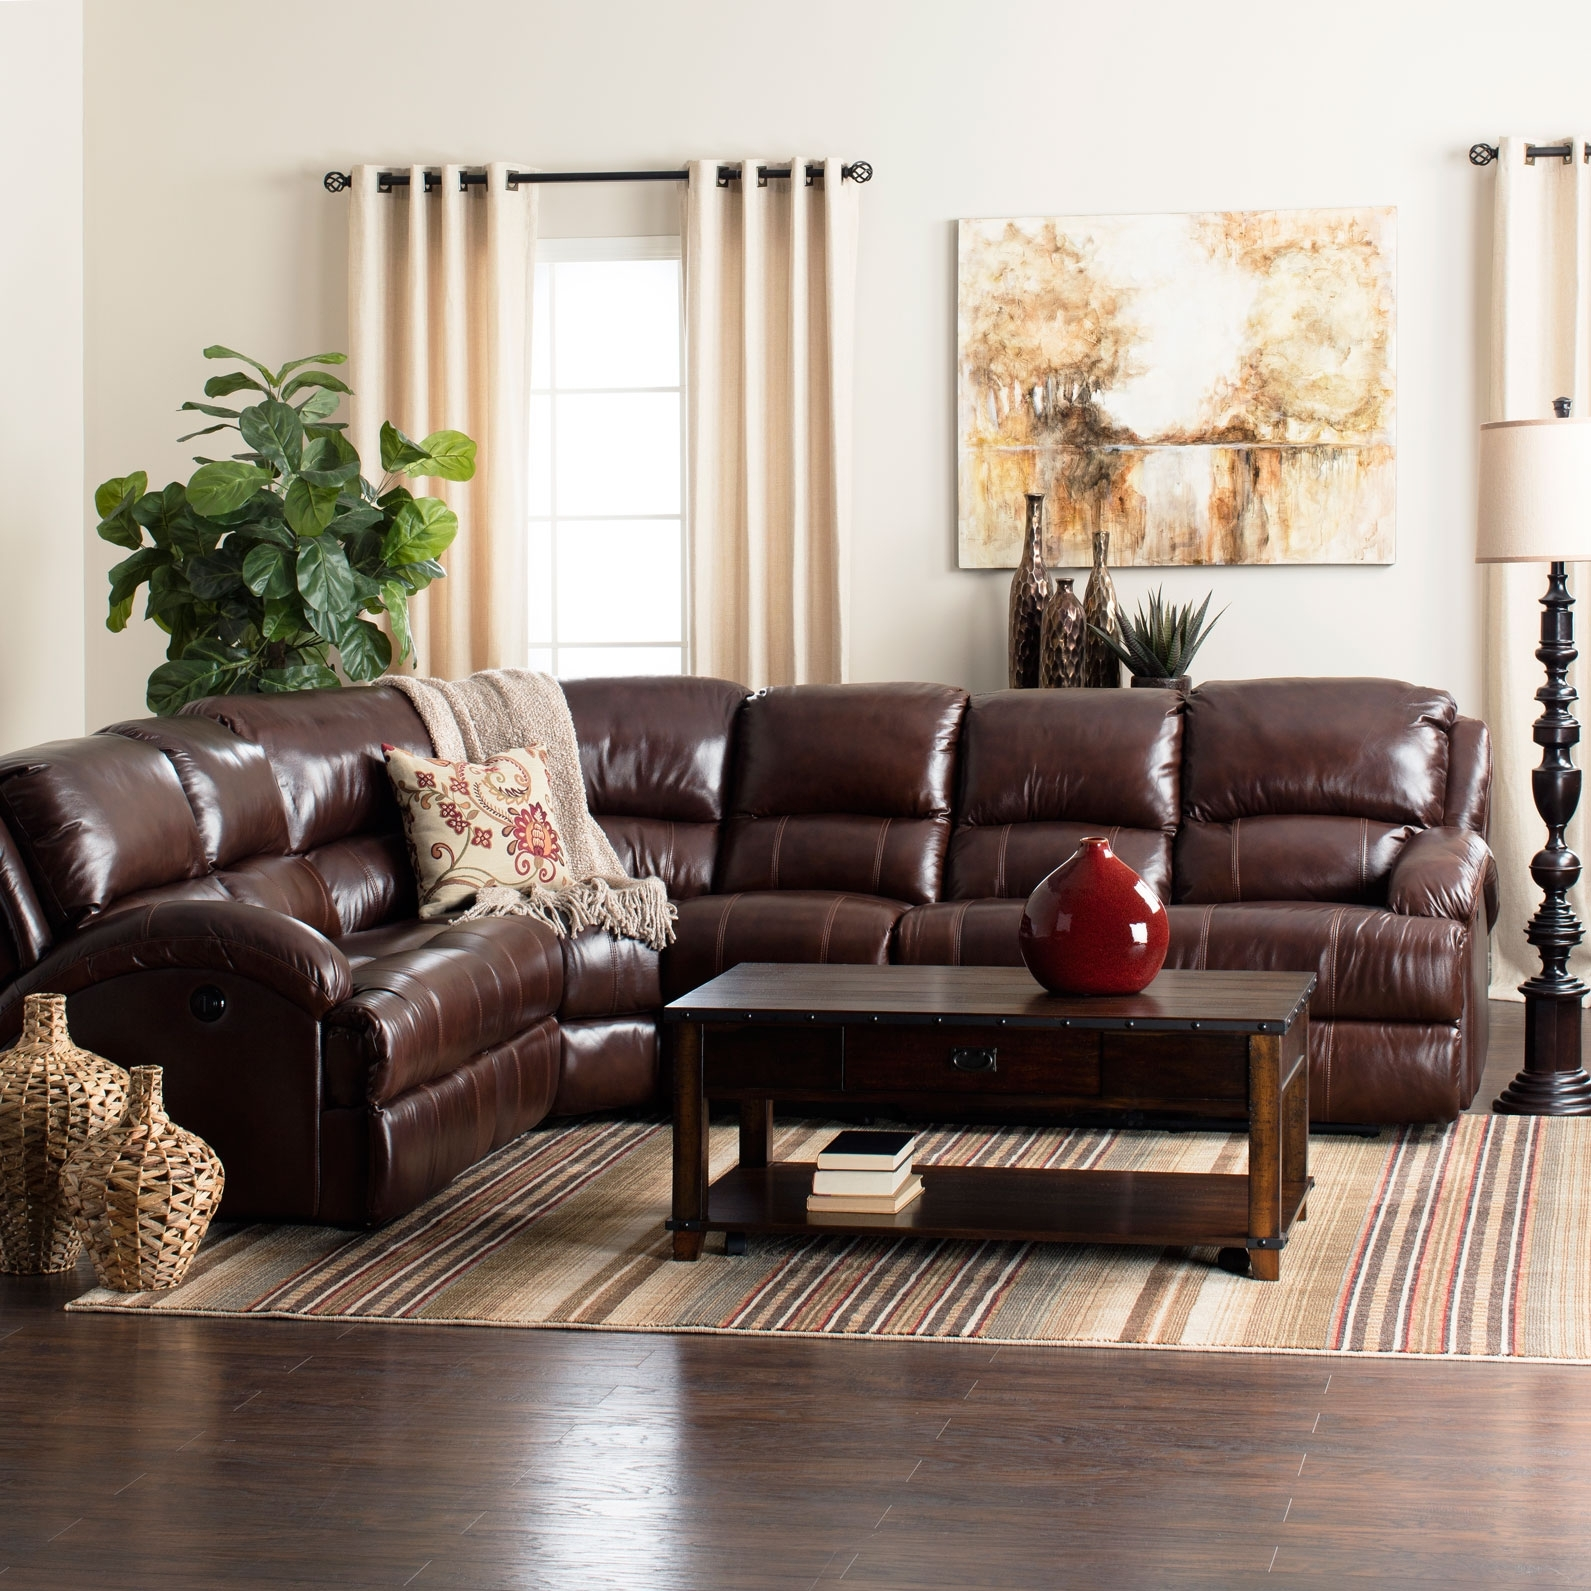 jeromes sofas 90 inch sofa pet cover 10 collection of jerome 39s sectional ideas